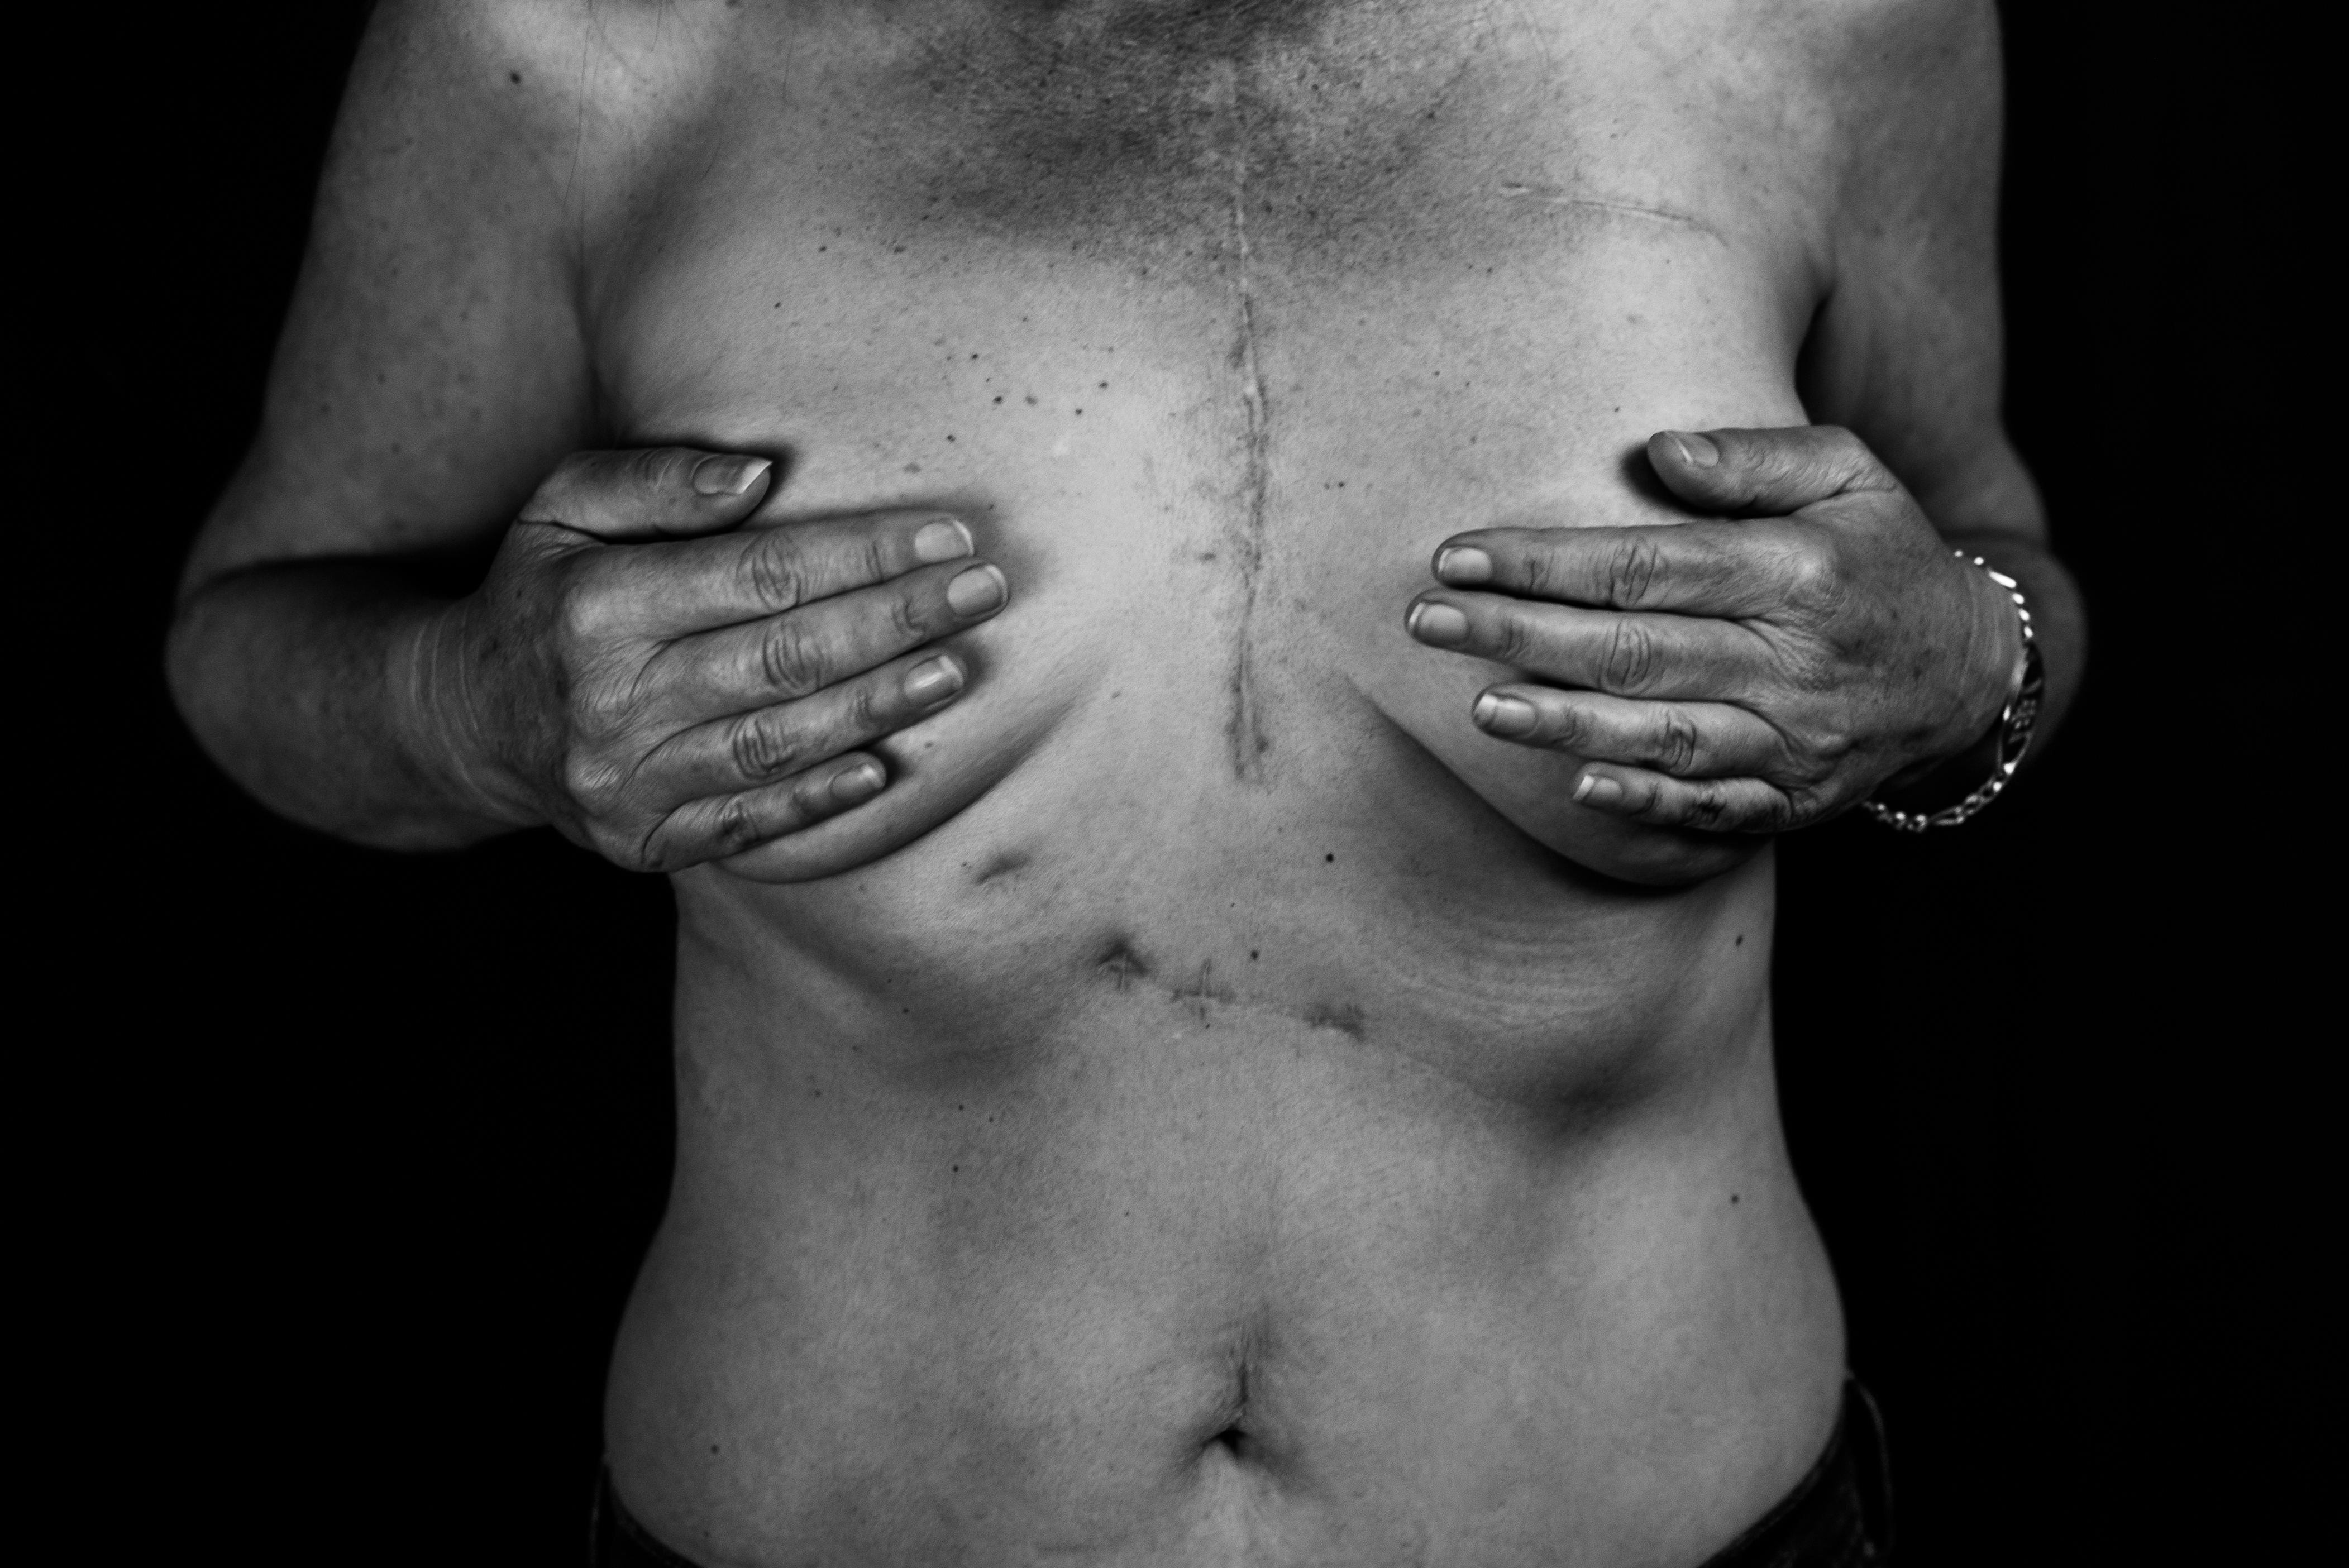 Women's chest shows scars while hands are holding chest.